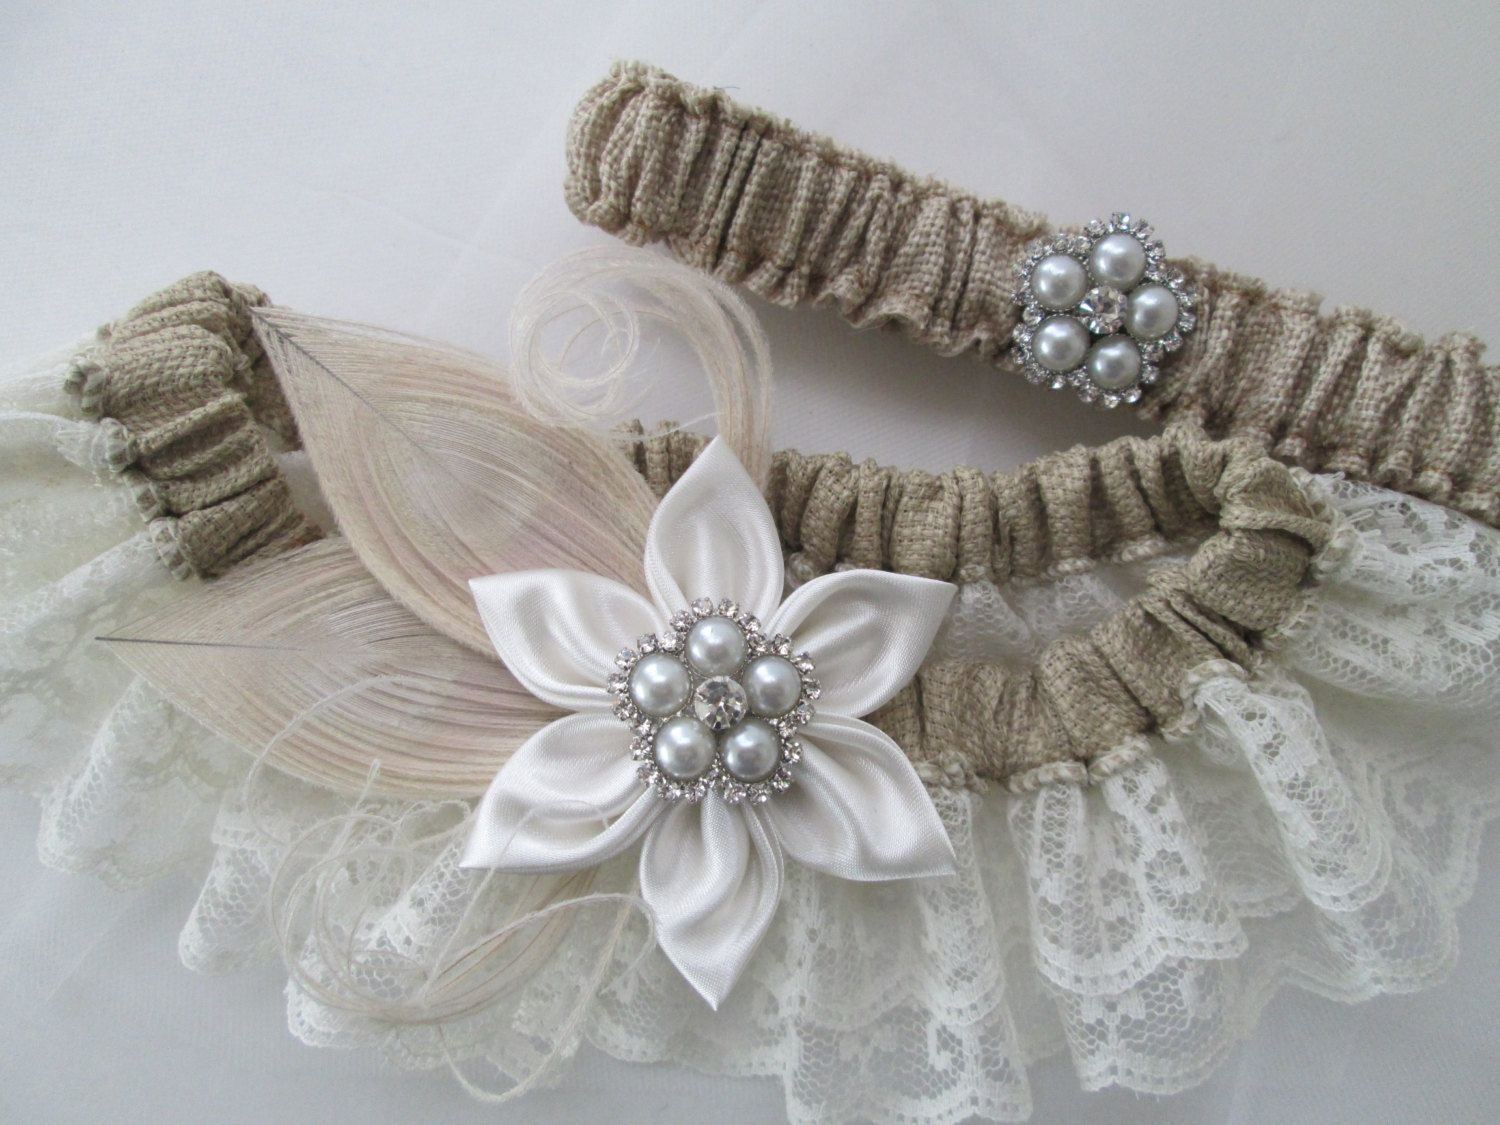 BURLAP Wedding Garter Set, Ivory Lace Garters, Peacock Garter, Rustic Barnyard Countryside IVORY Wedding Garters, Kanzashi Flower, Pearls by GibsonGirlGarters on Etsy